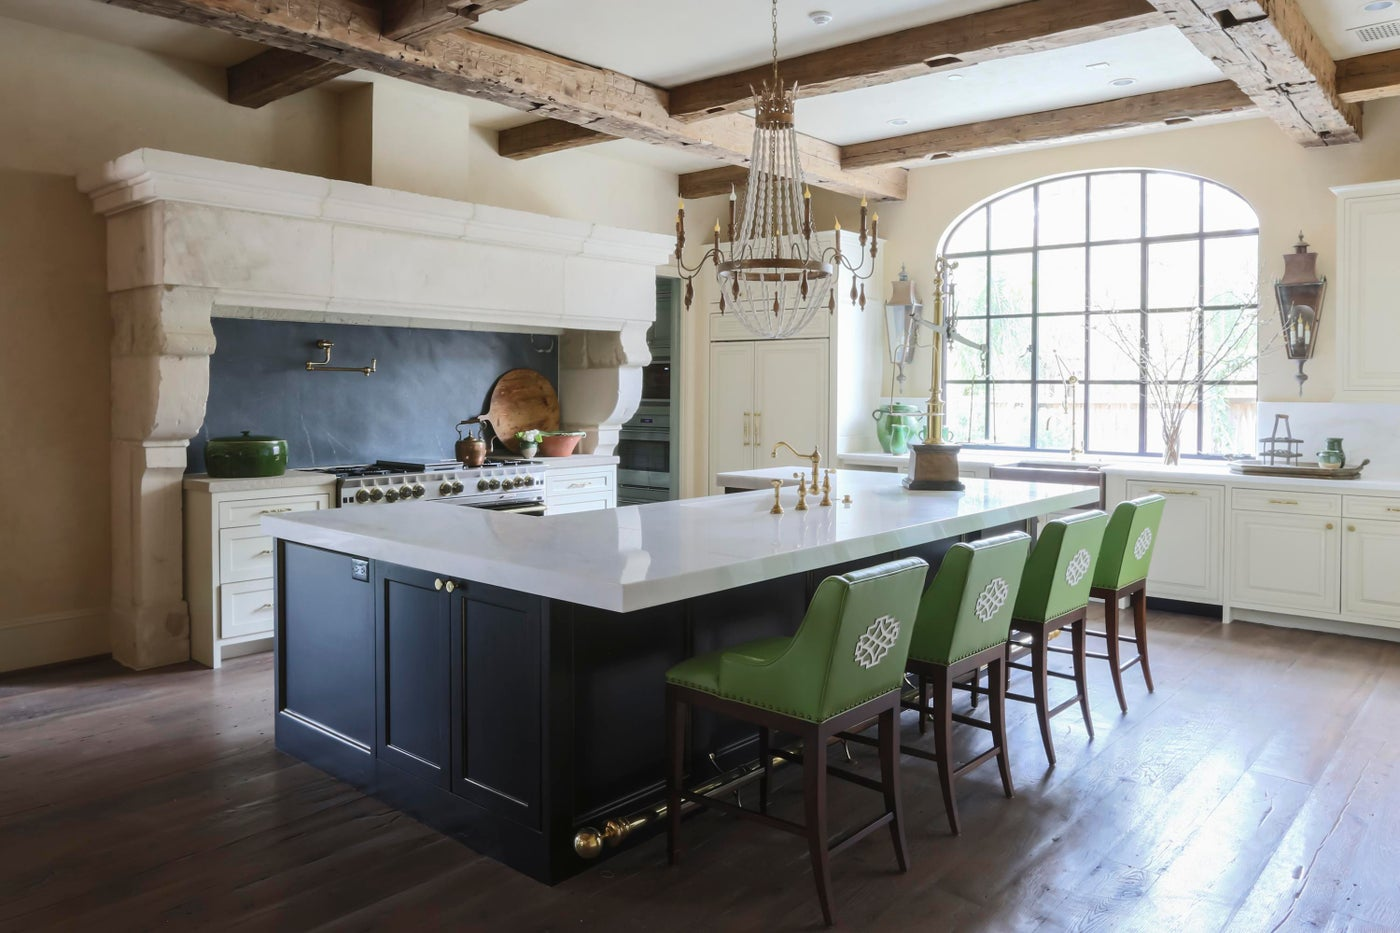 French transitional kitchen- steel windows, reclaimed beams & bright green twist